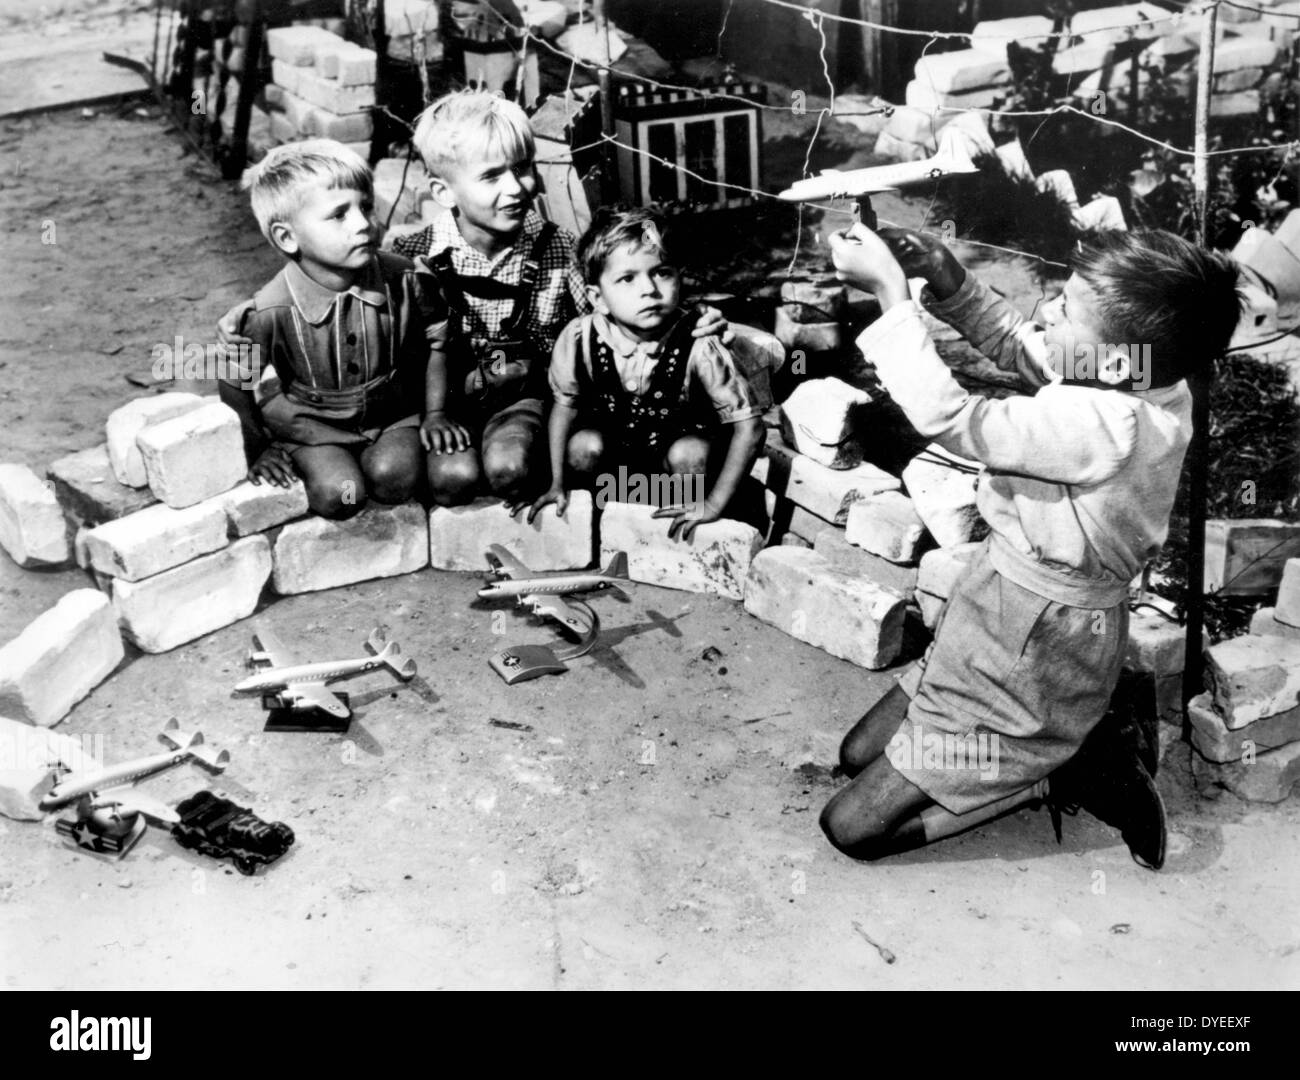 Japan after an atomic bomb attack in 1945 A.D. - Stock Image